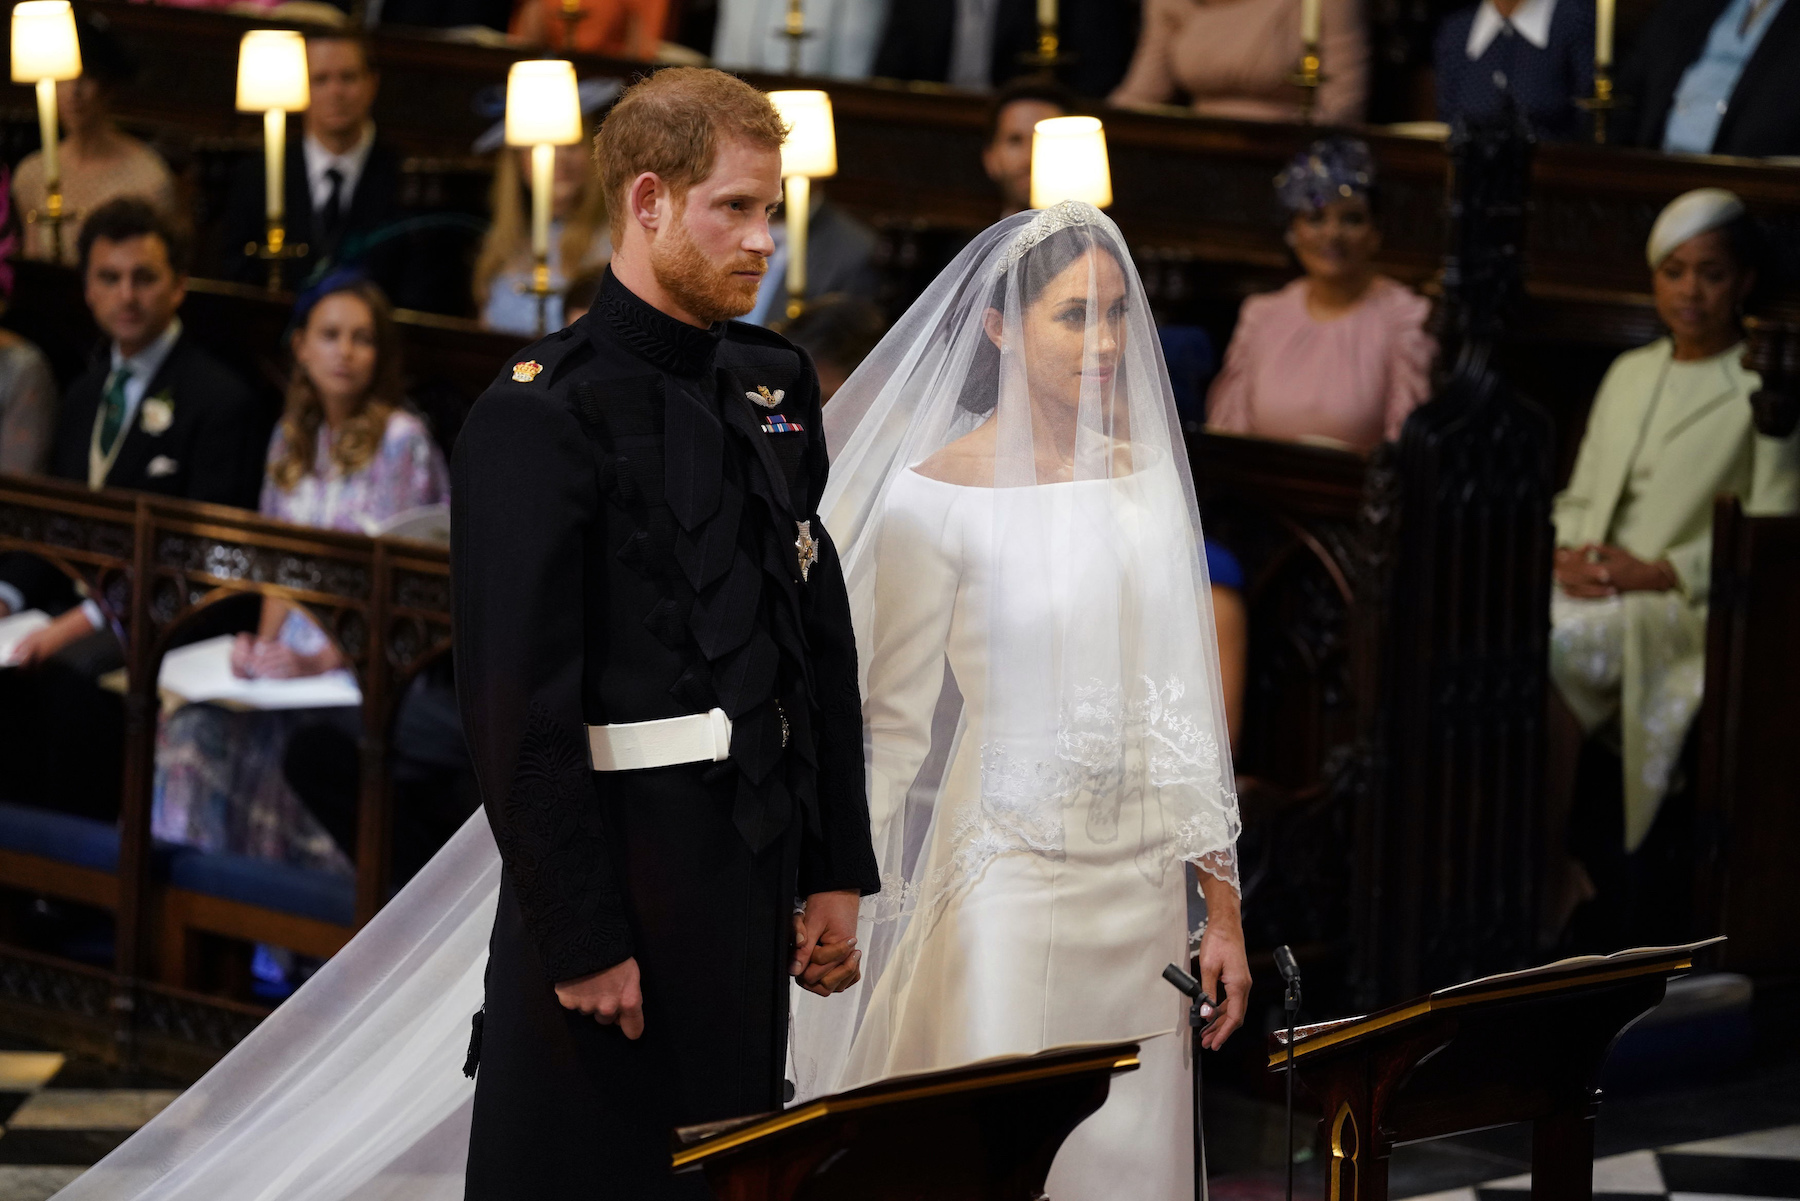 "<div class=""meta image-caption""><div class=""origin-logo origin-image wpvi""><span>wpvi</span></div><span class=""caption-text"">Prince Harry and Meghan Markle in St George's Chapel at Windsor Castle for their wedding. (Dominic Lipinsky/PA Wire)</span></div>"